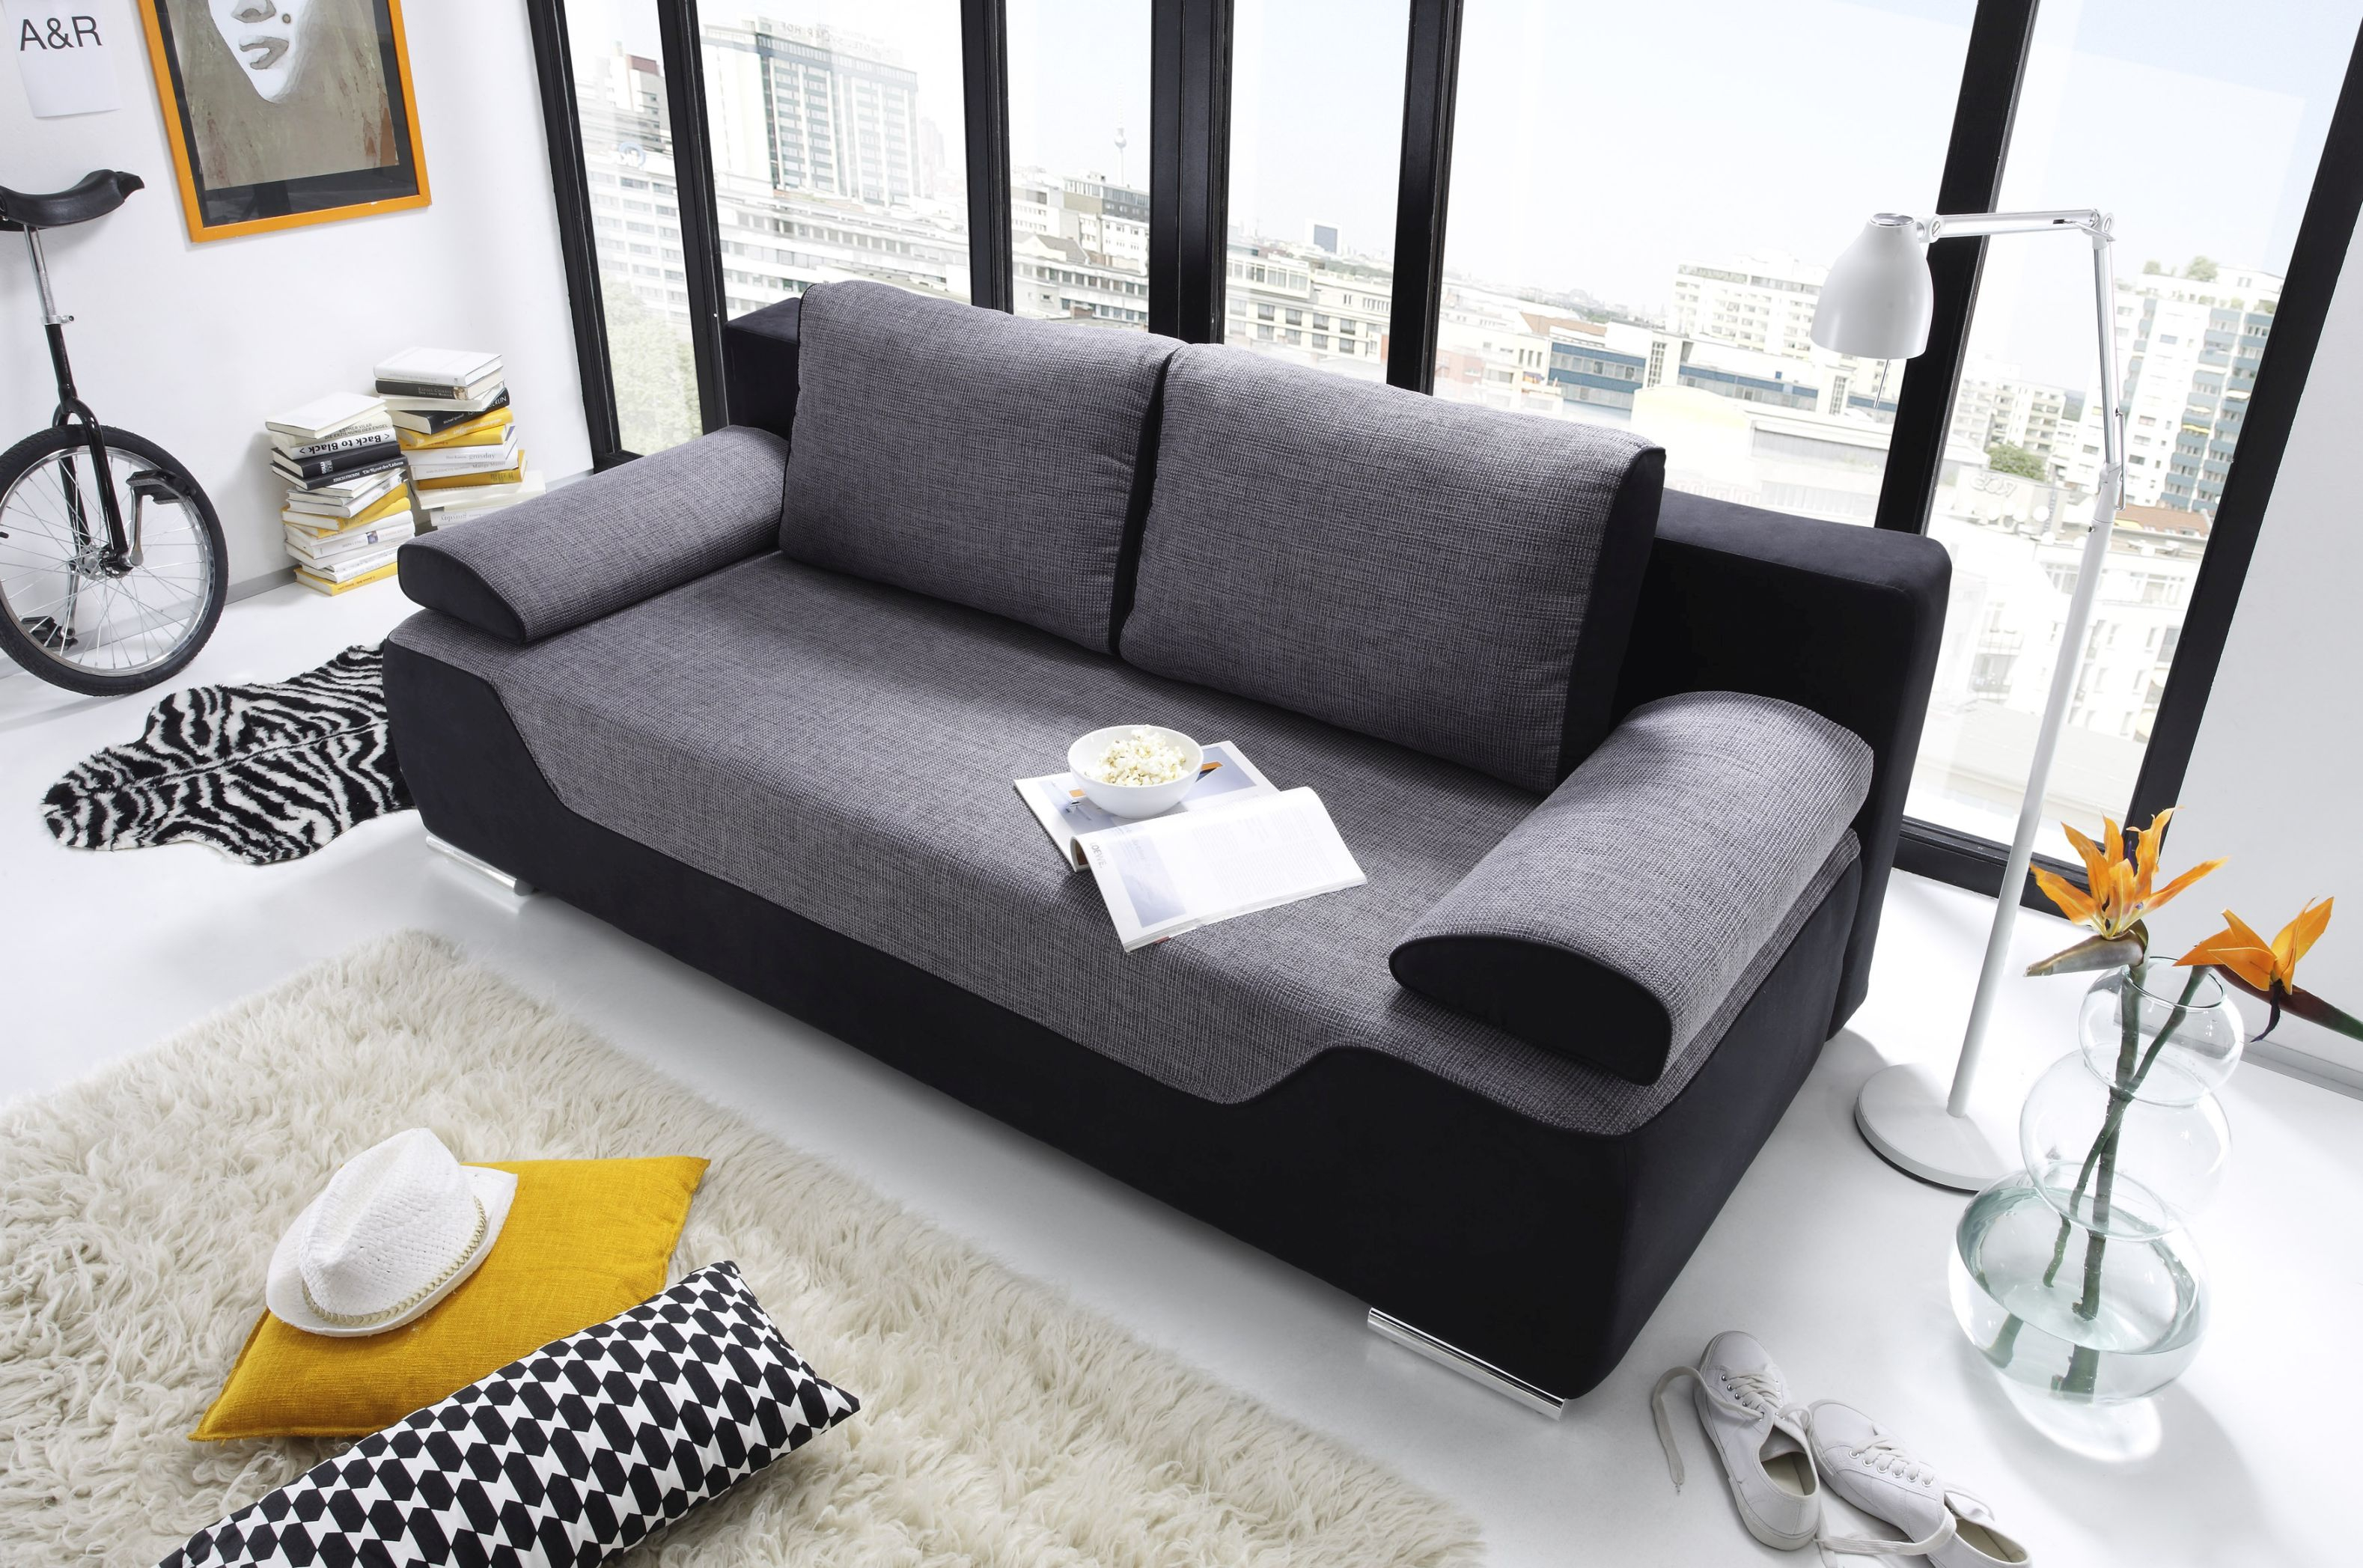 couch schlafsofa sofabett funktionssofa ausziehbar schwarz. Black Bedroom Furniture Sets. Home Design Ideas